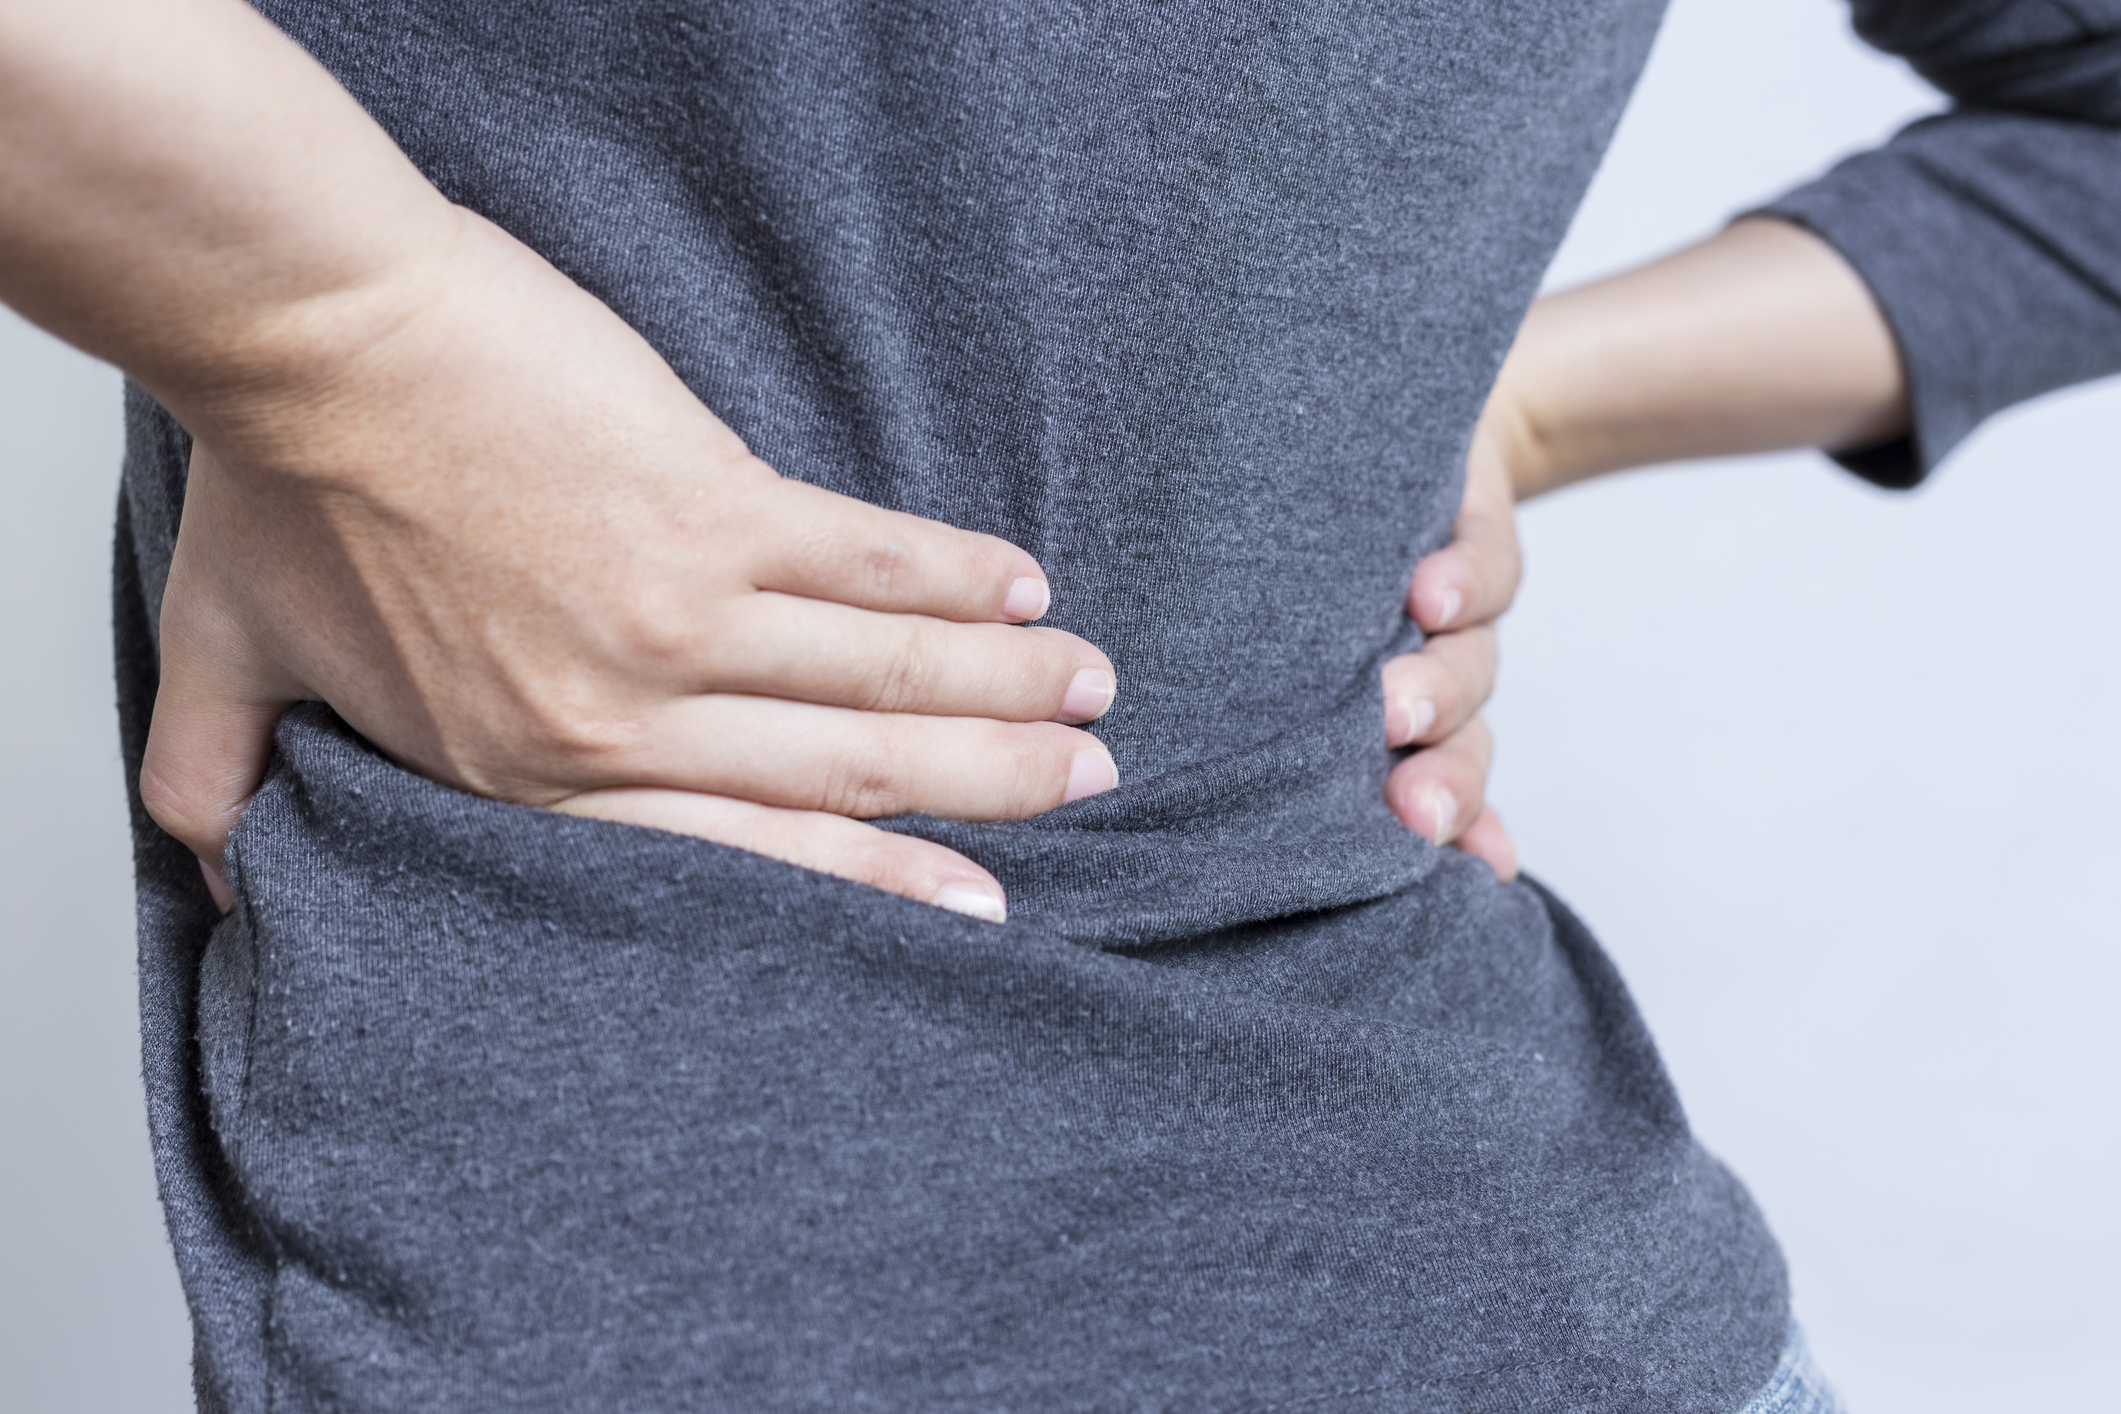 Why is Sciatica Not a Chronic Pain Condition?